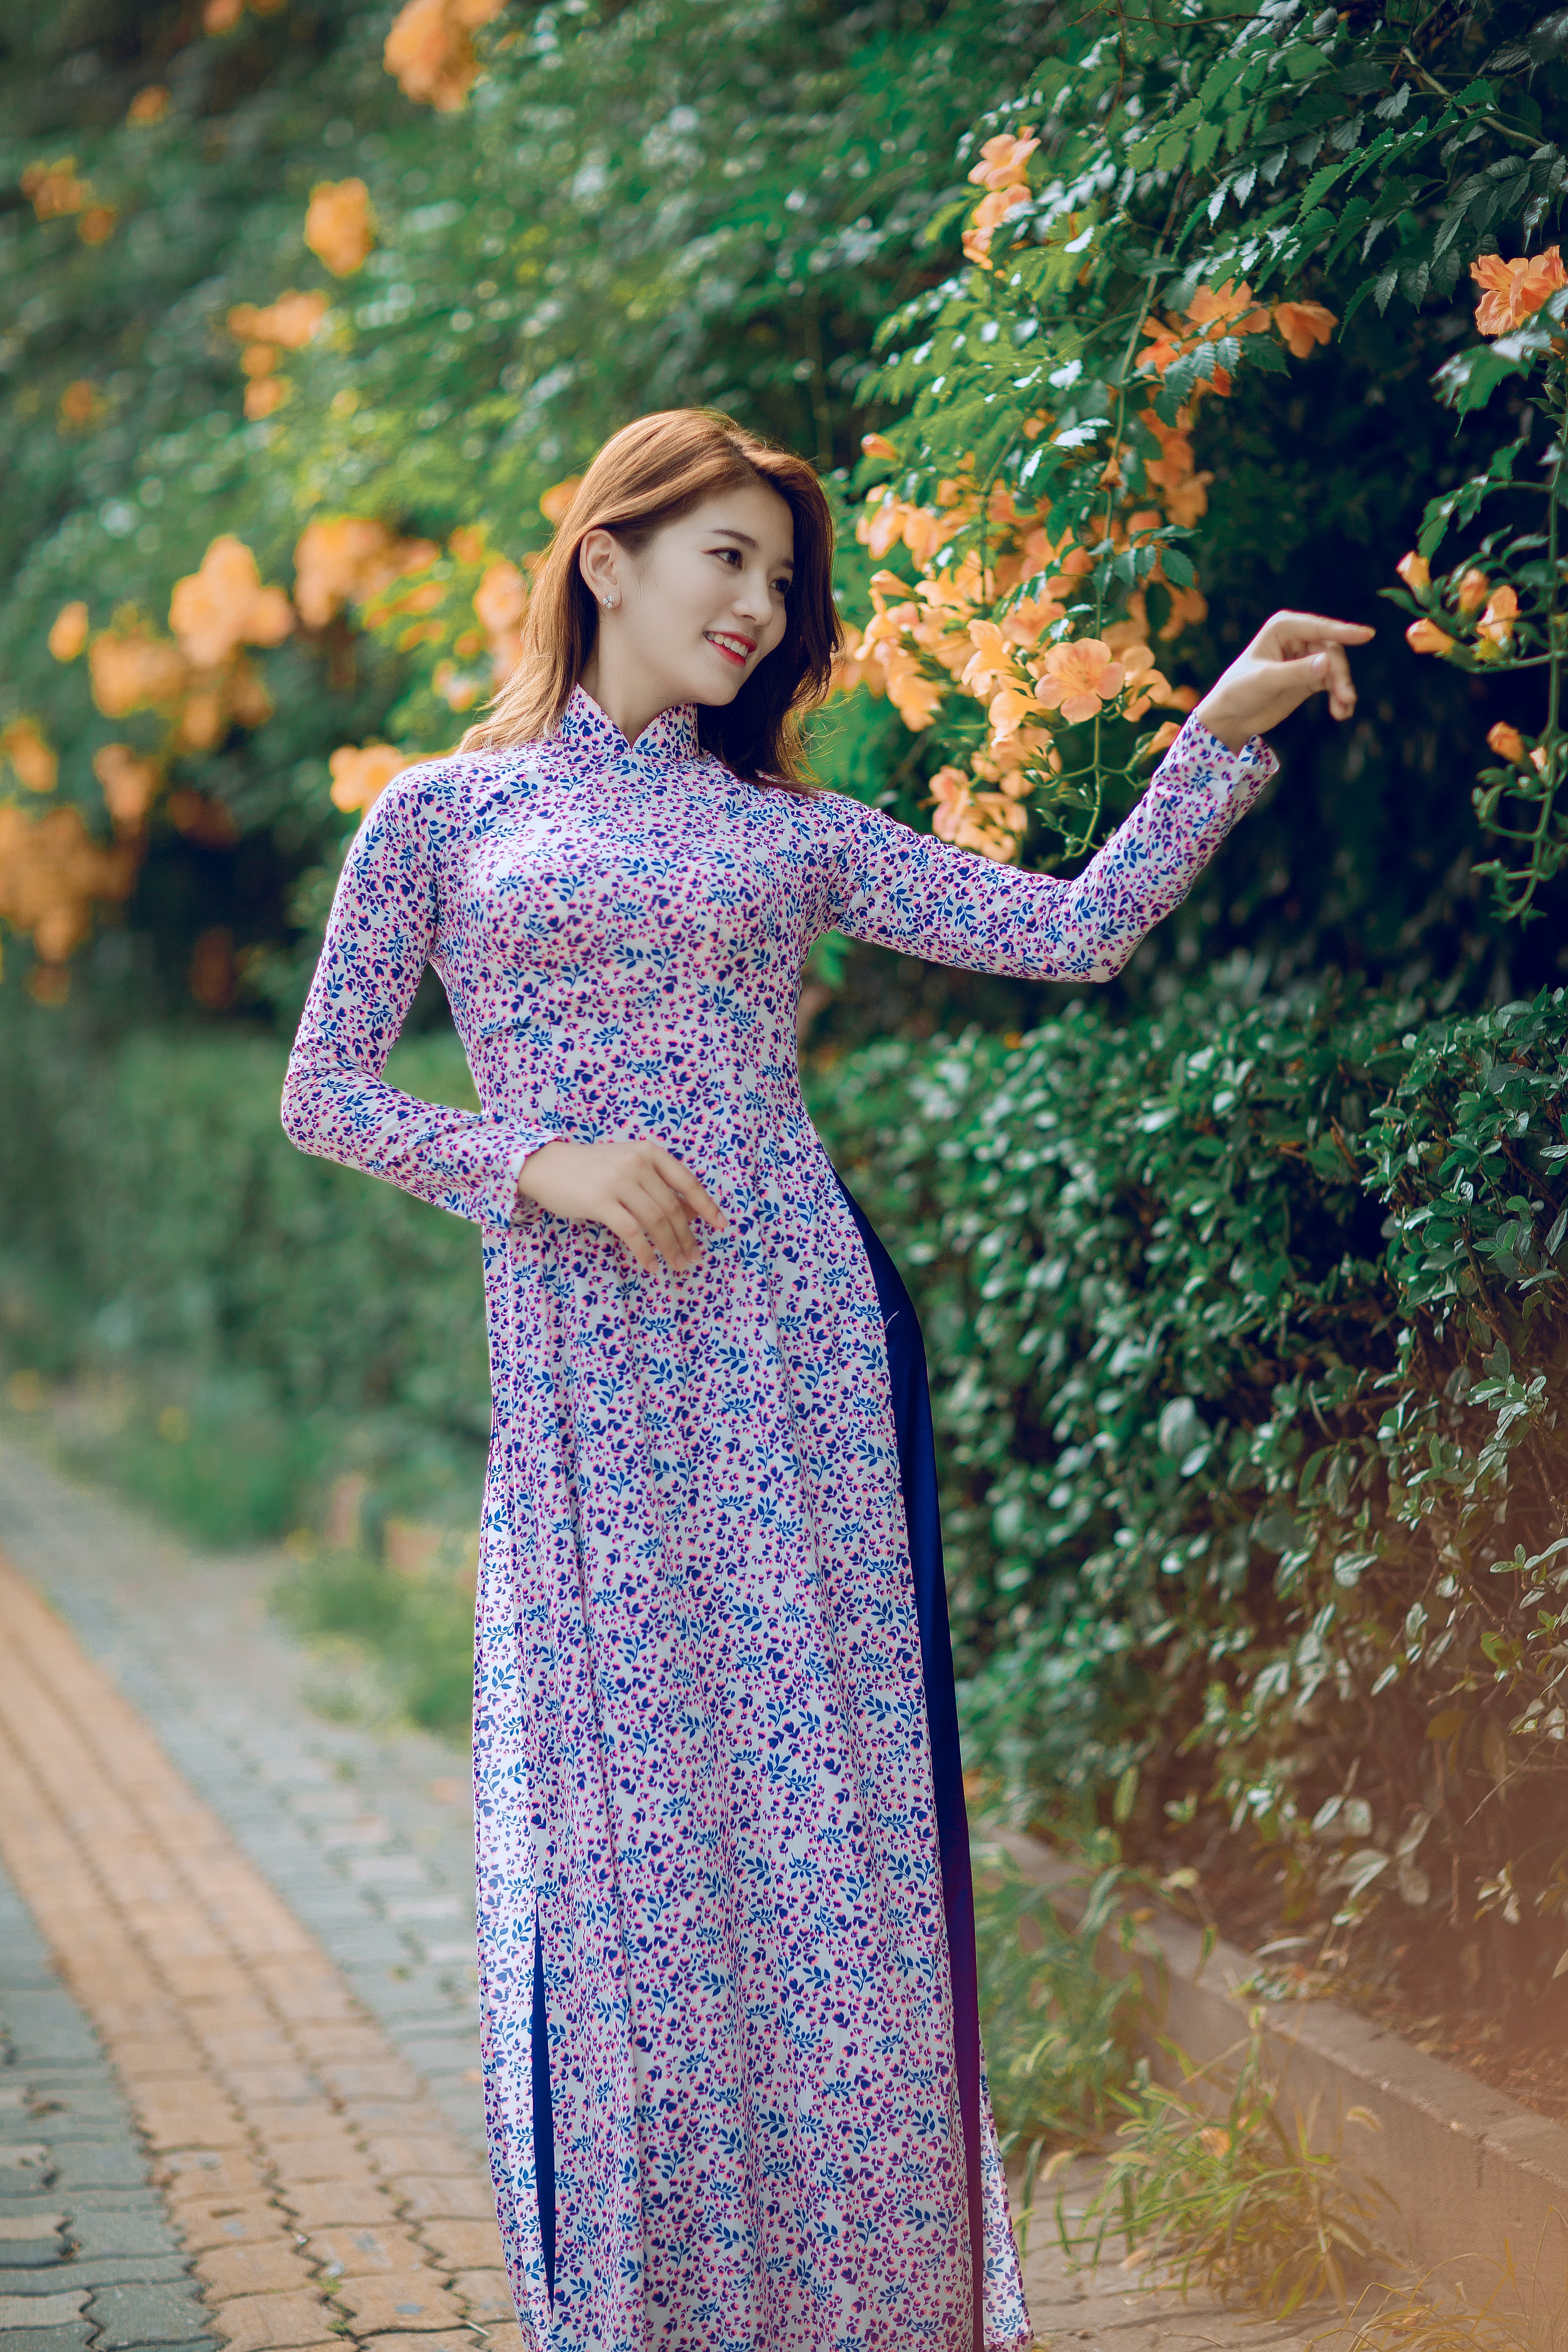 Photography Of Woman In Purple Floral Dress